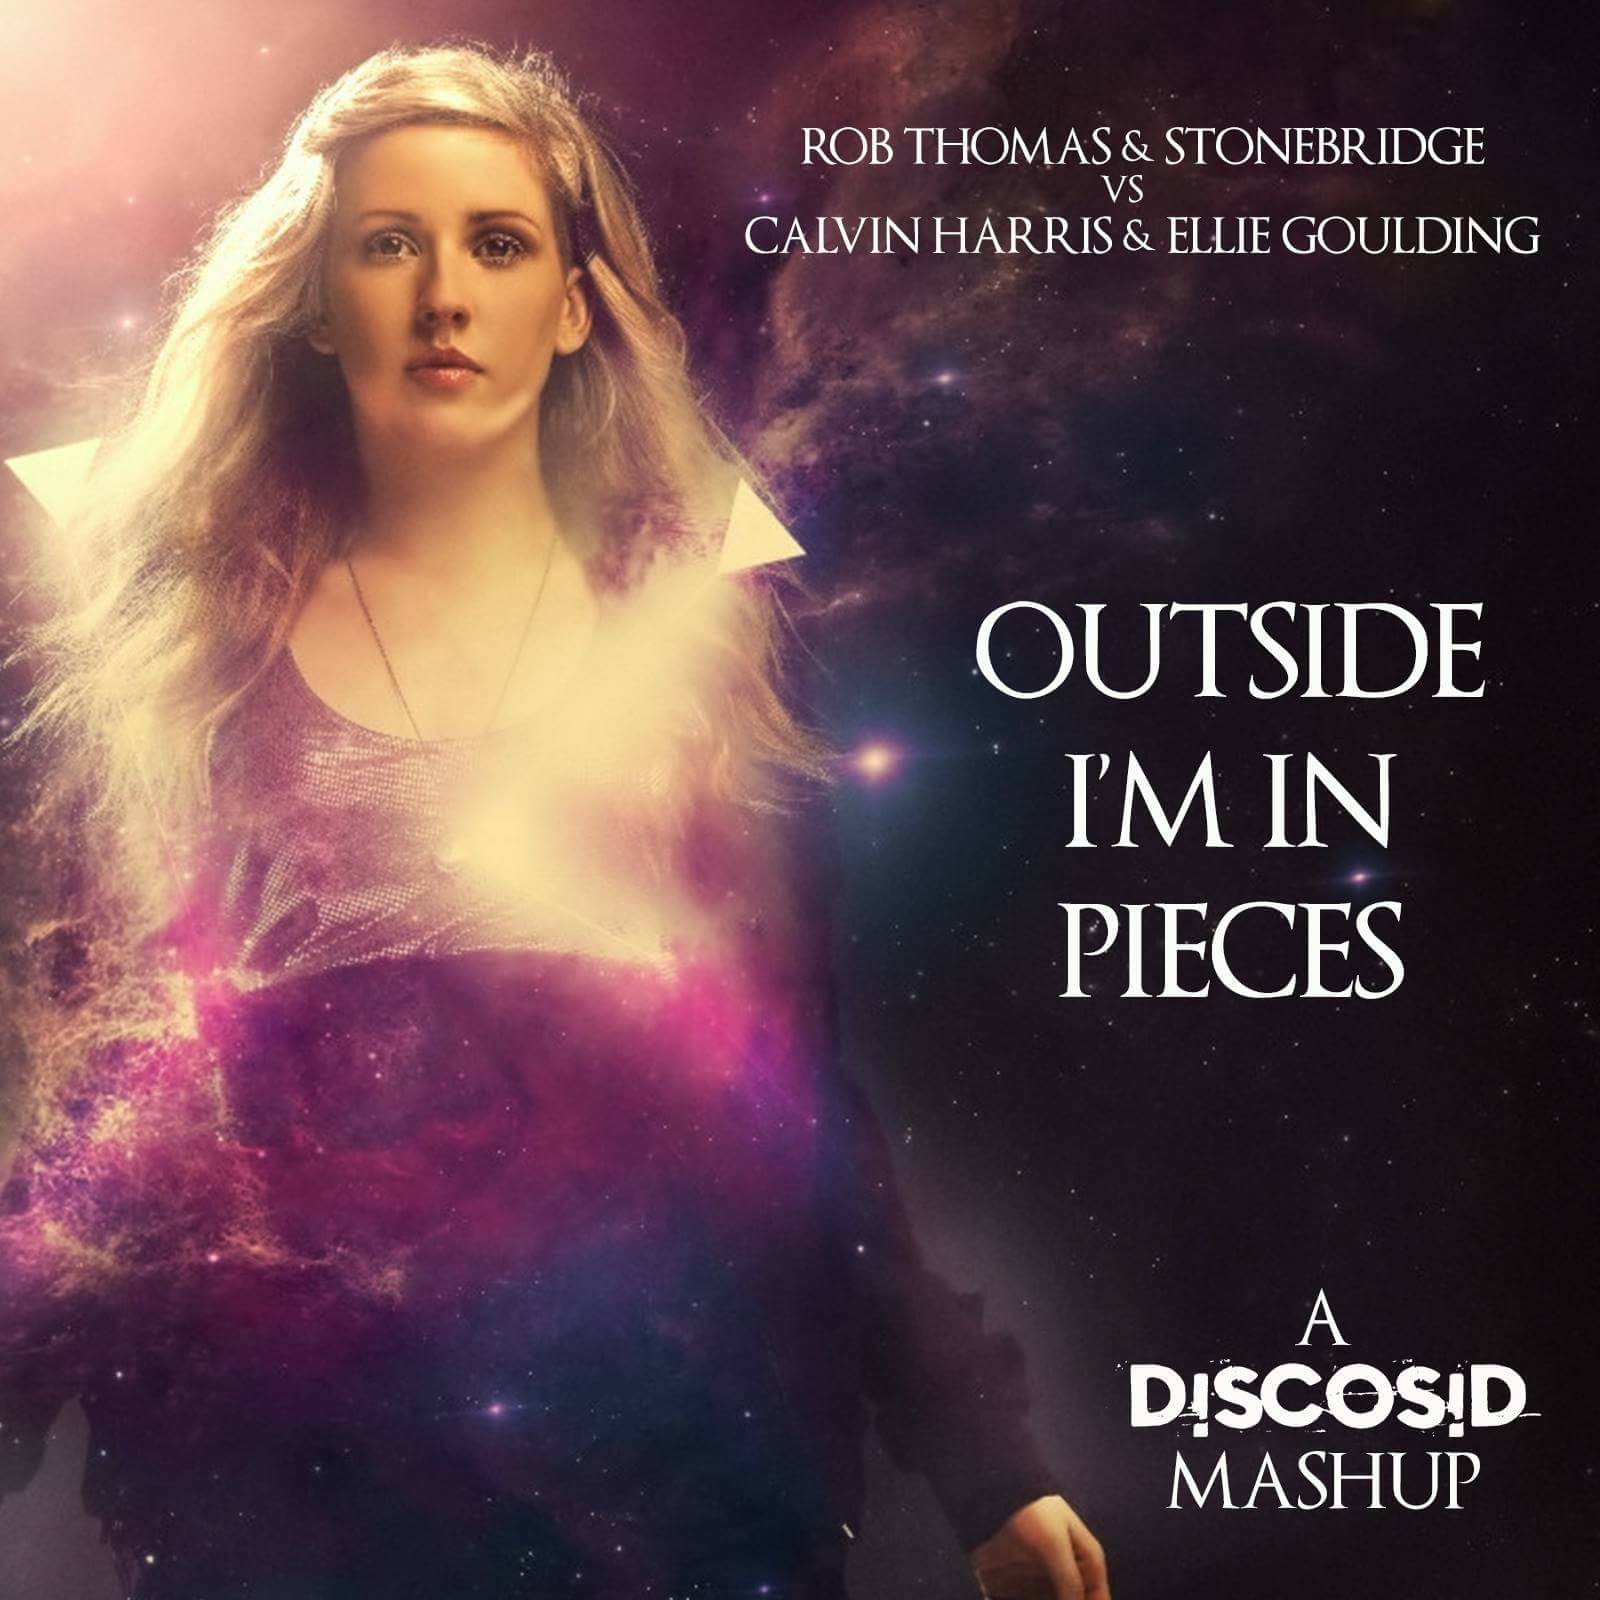 Rob Thomas & Stonebridge Vs Calvin Harris & Ellie Goulding - Outside I'm In Pieces (Discosid Mashup)